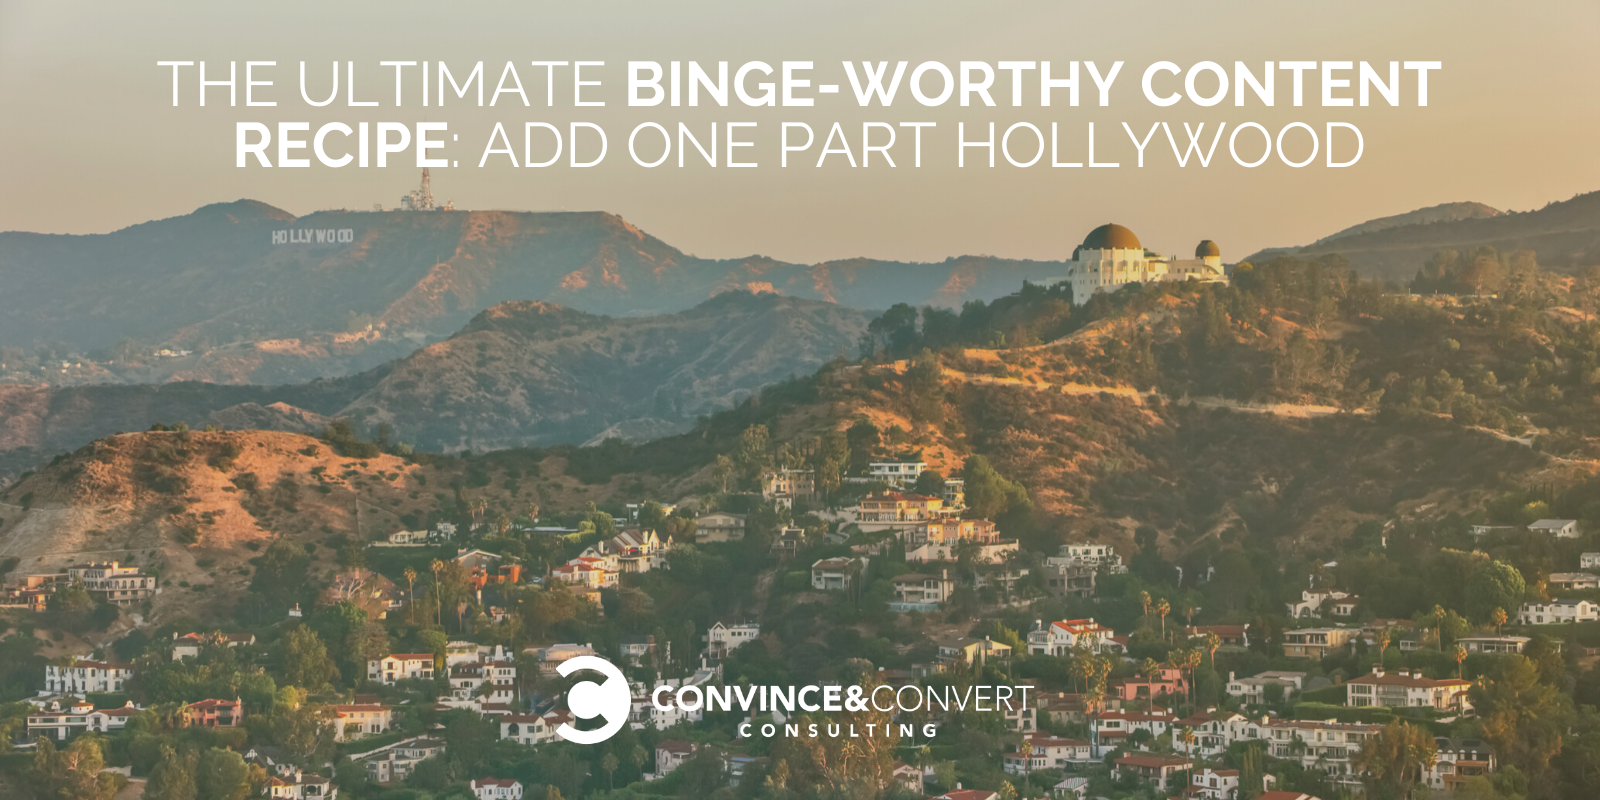 The Final Binge-Righteous Grunt Recipe: Add One Phase Hollywood